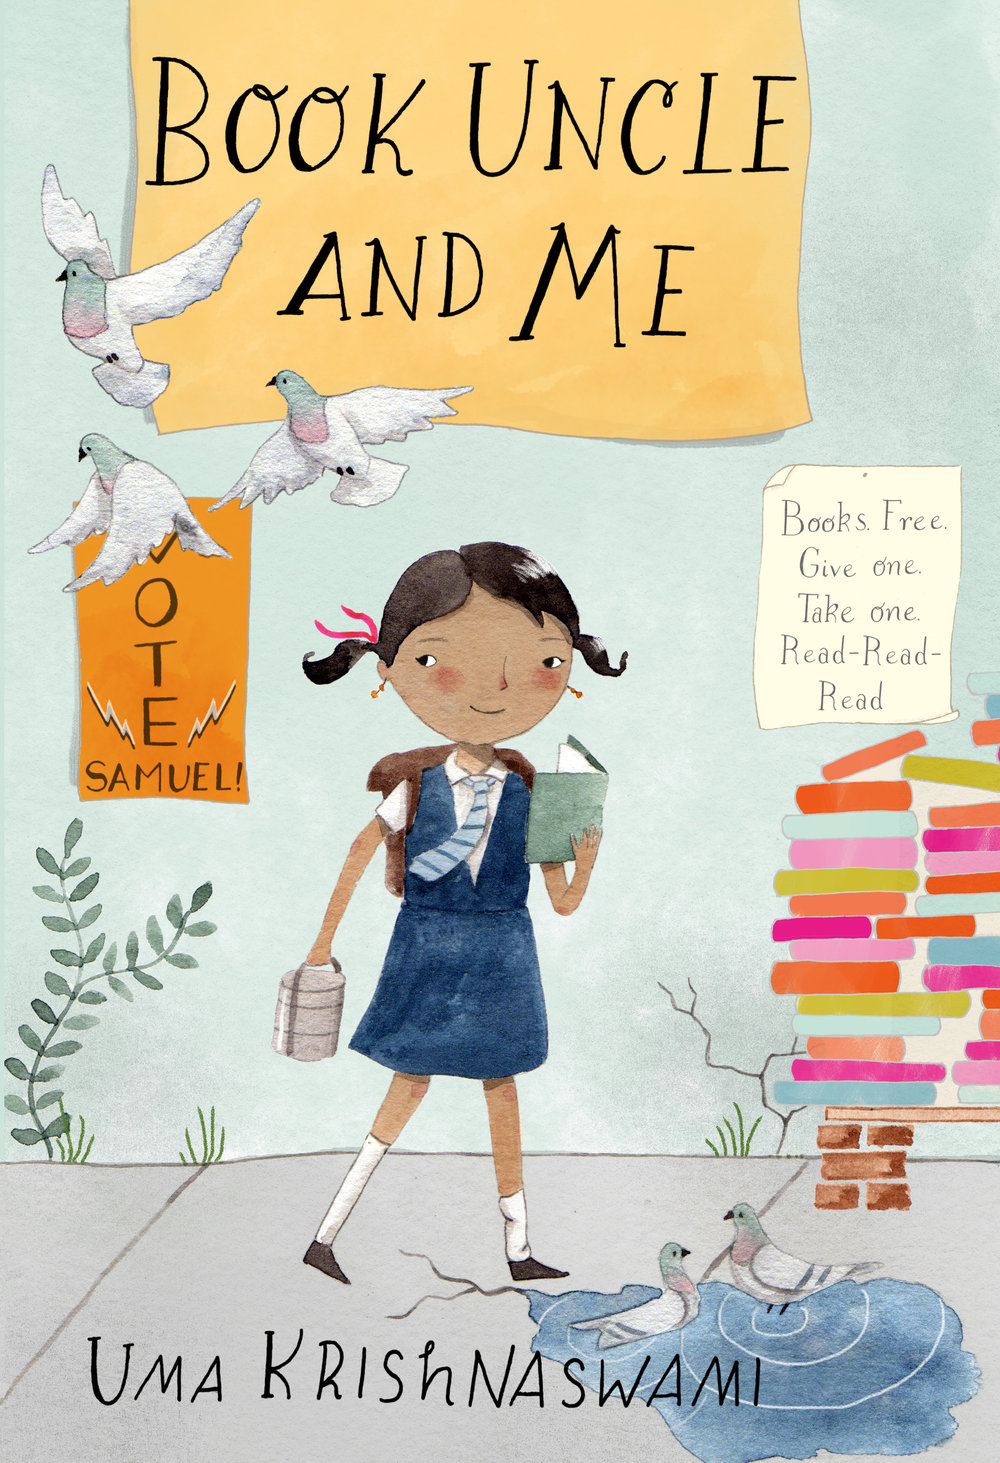 Book Uncle and Me, by Uma Krishnaswami